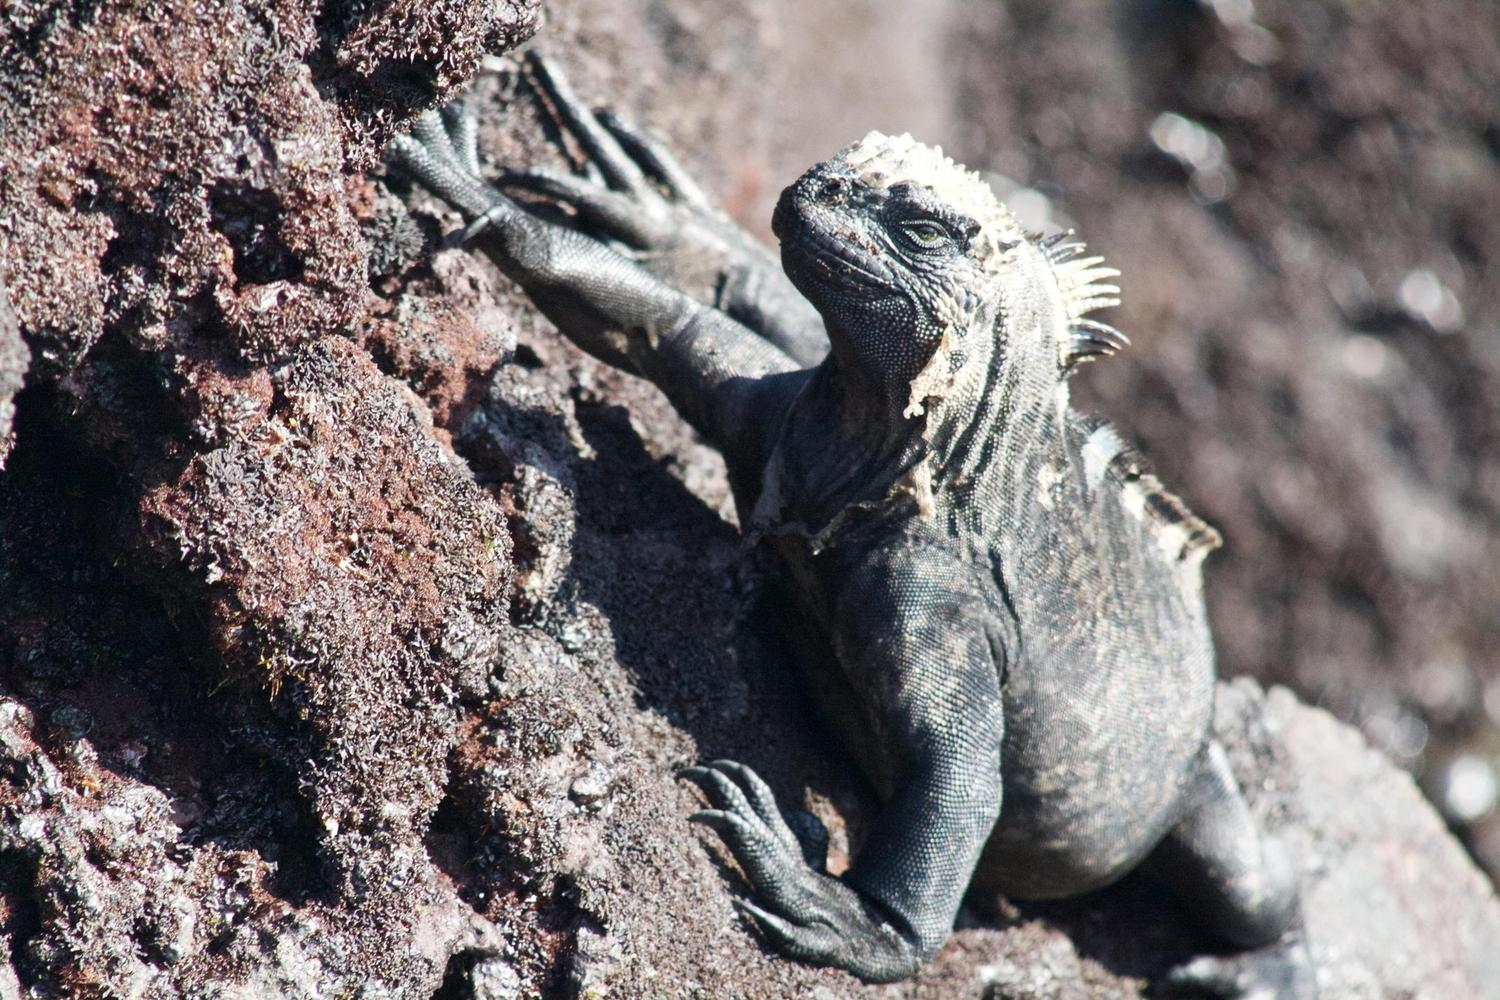 A marine iguana catching the afternoon sun on Isabela Island, Galapagos